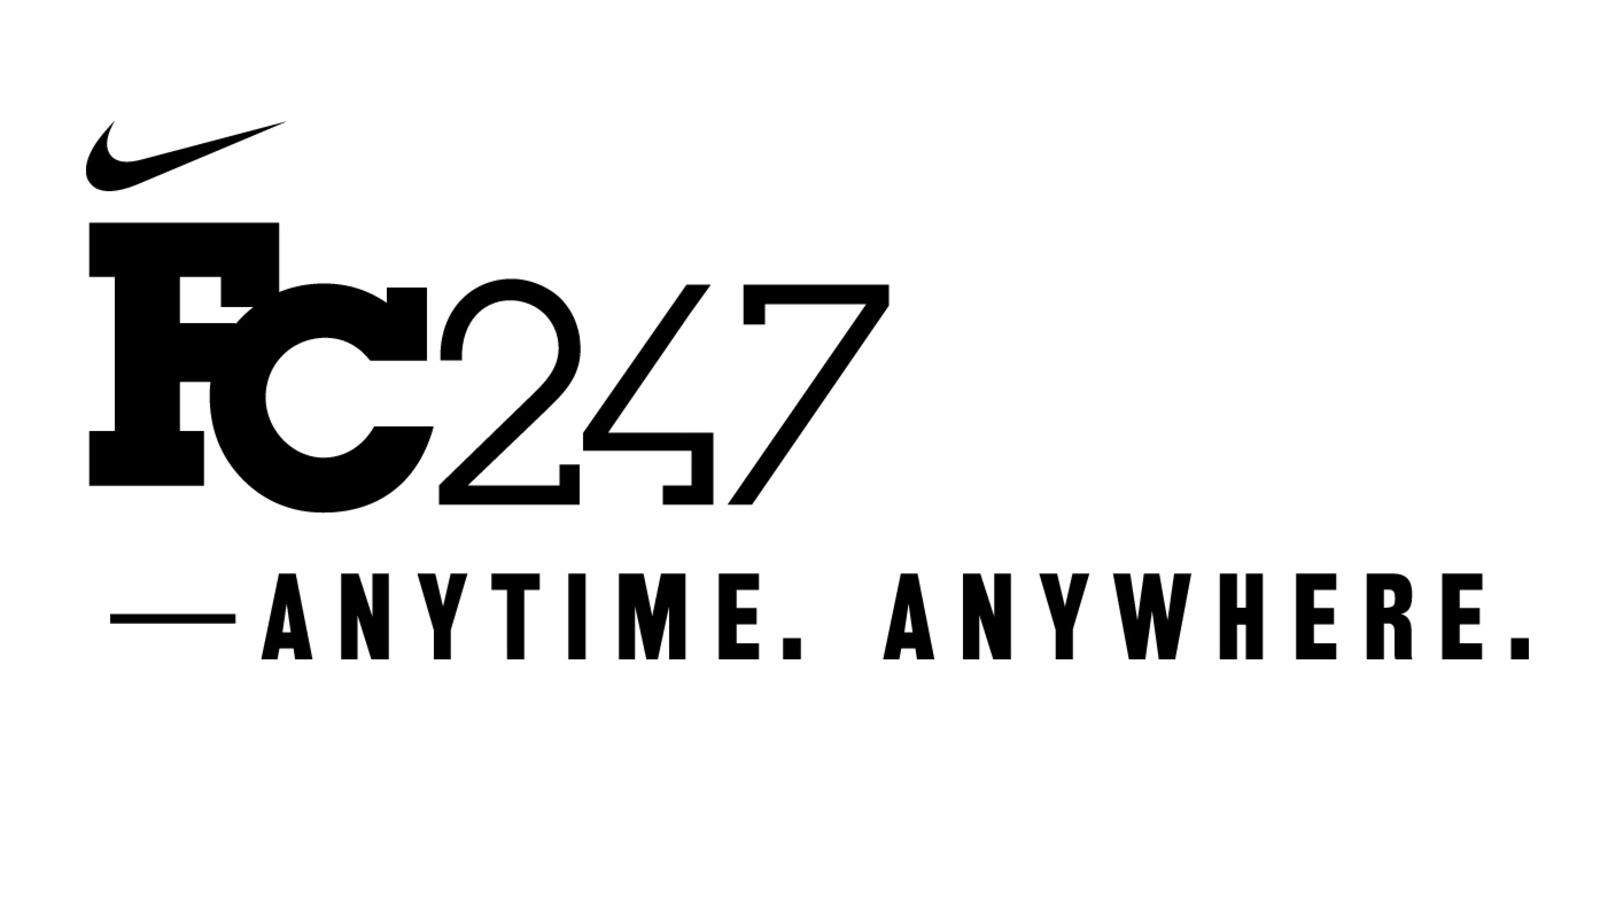 FC247 Anytime. Anywhere.